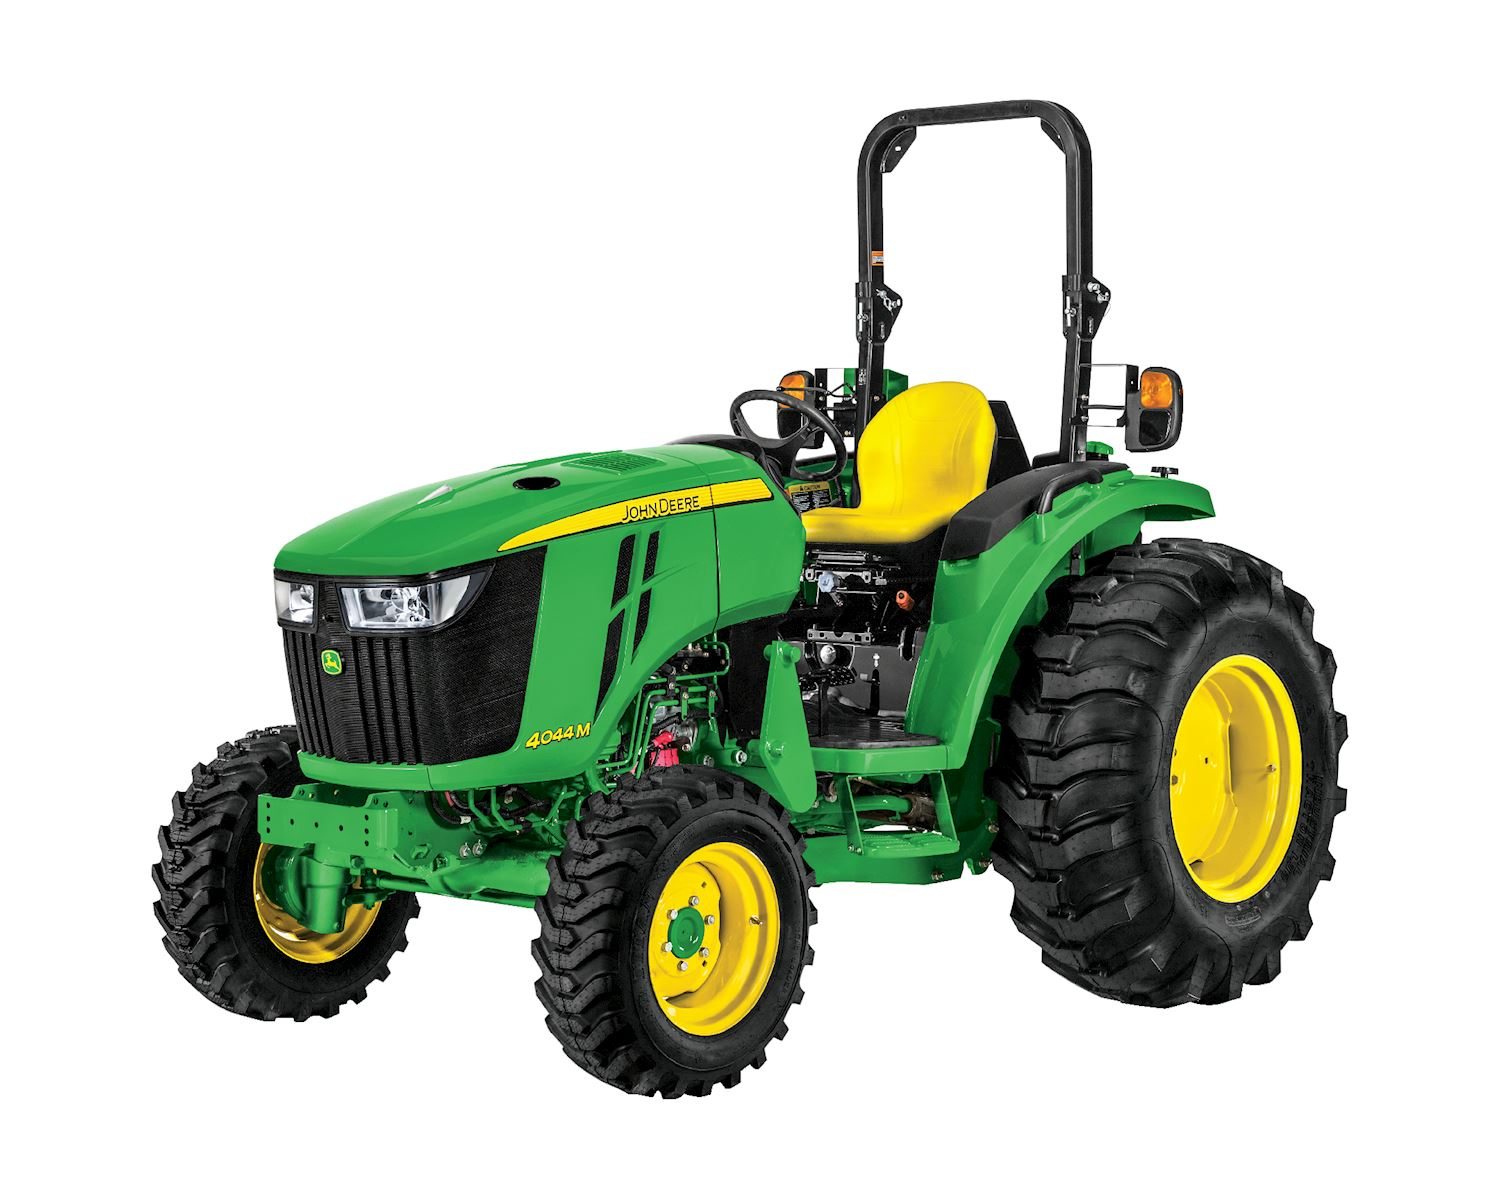 New 4044M Compact Utility Tractor